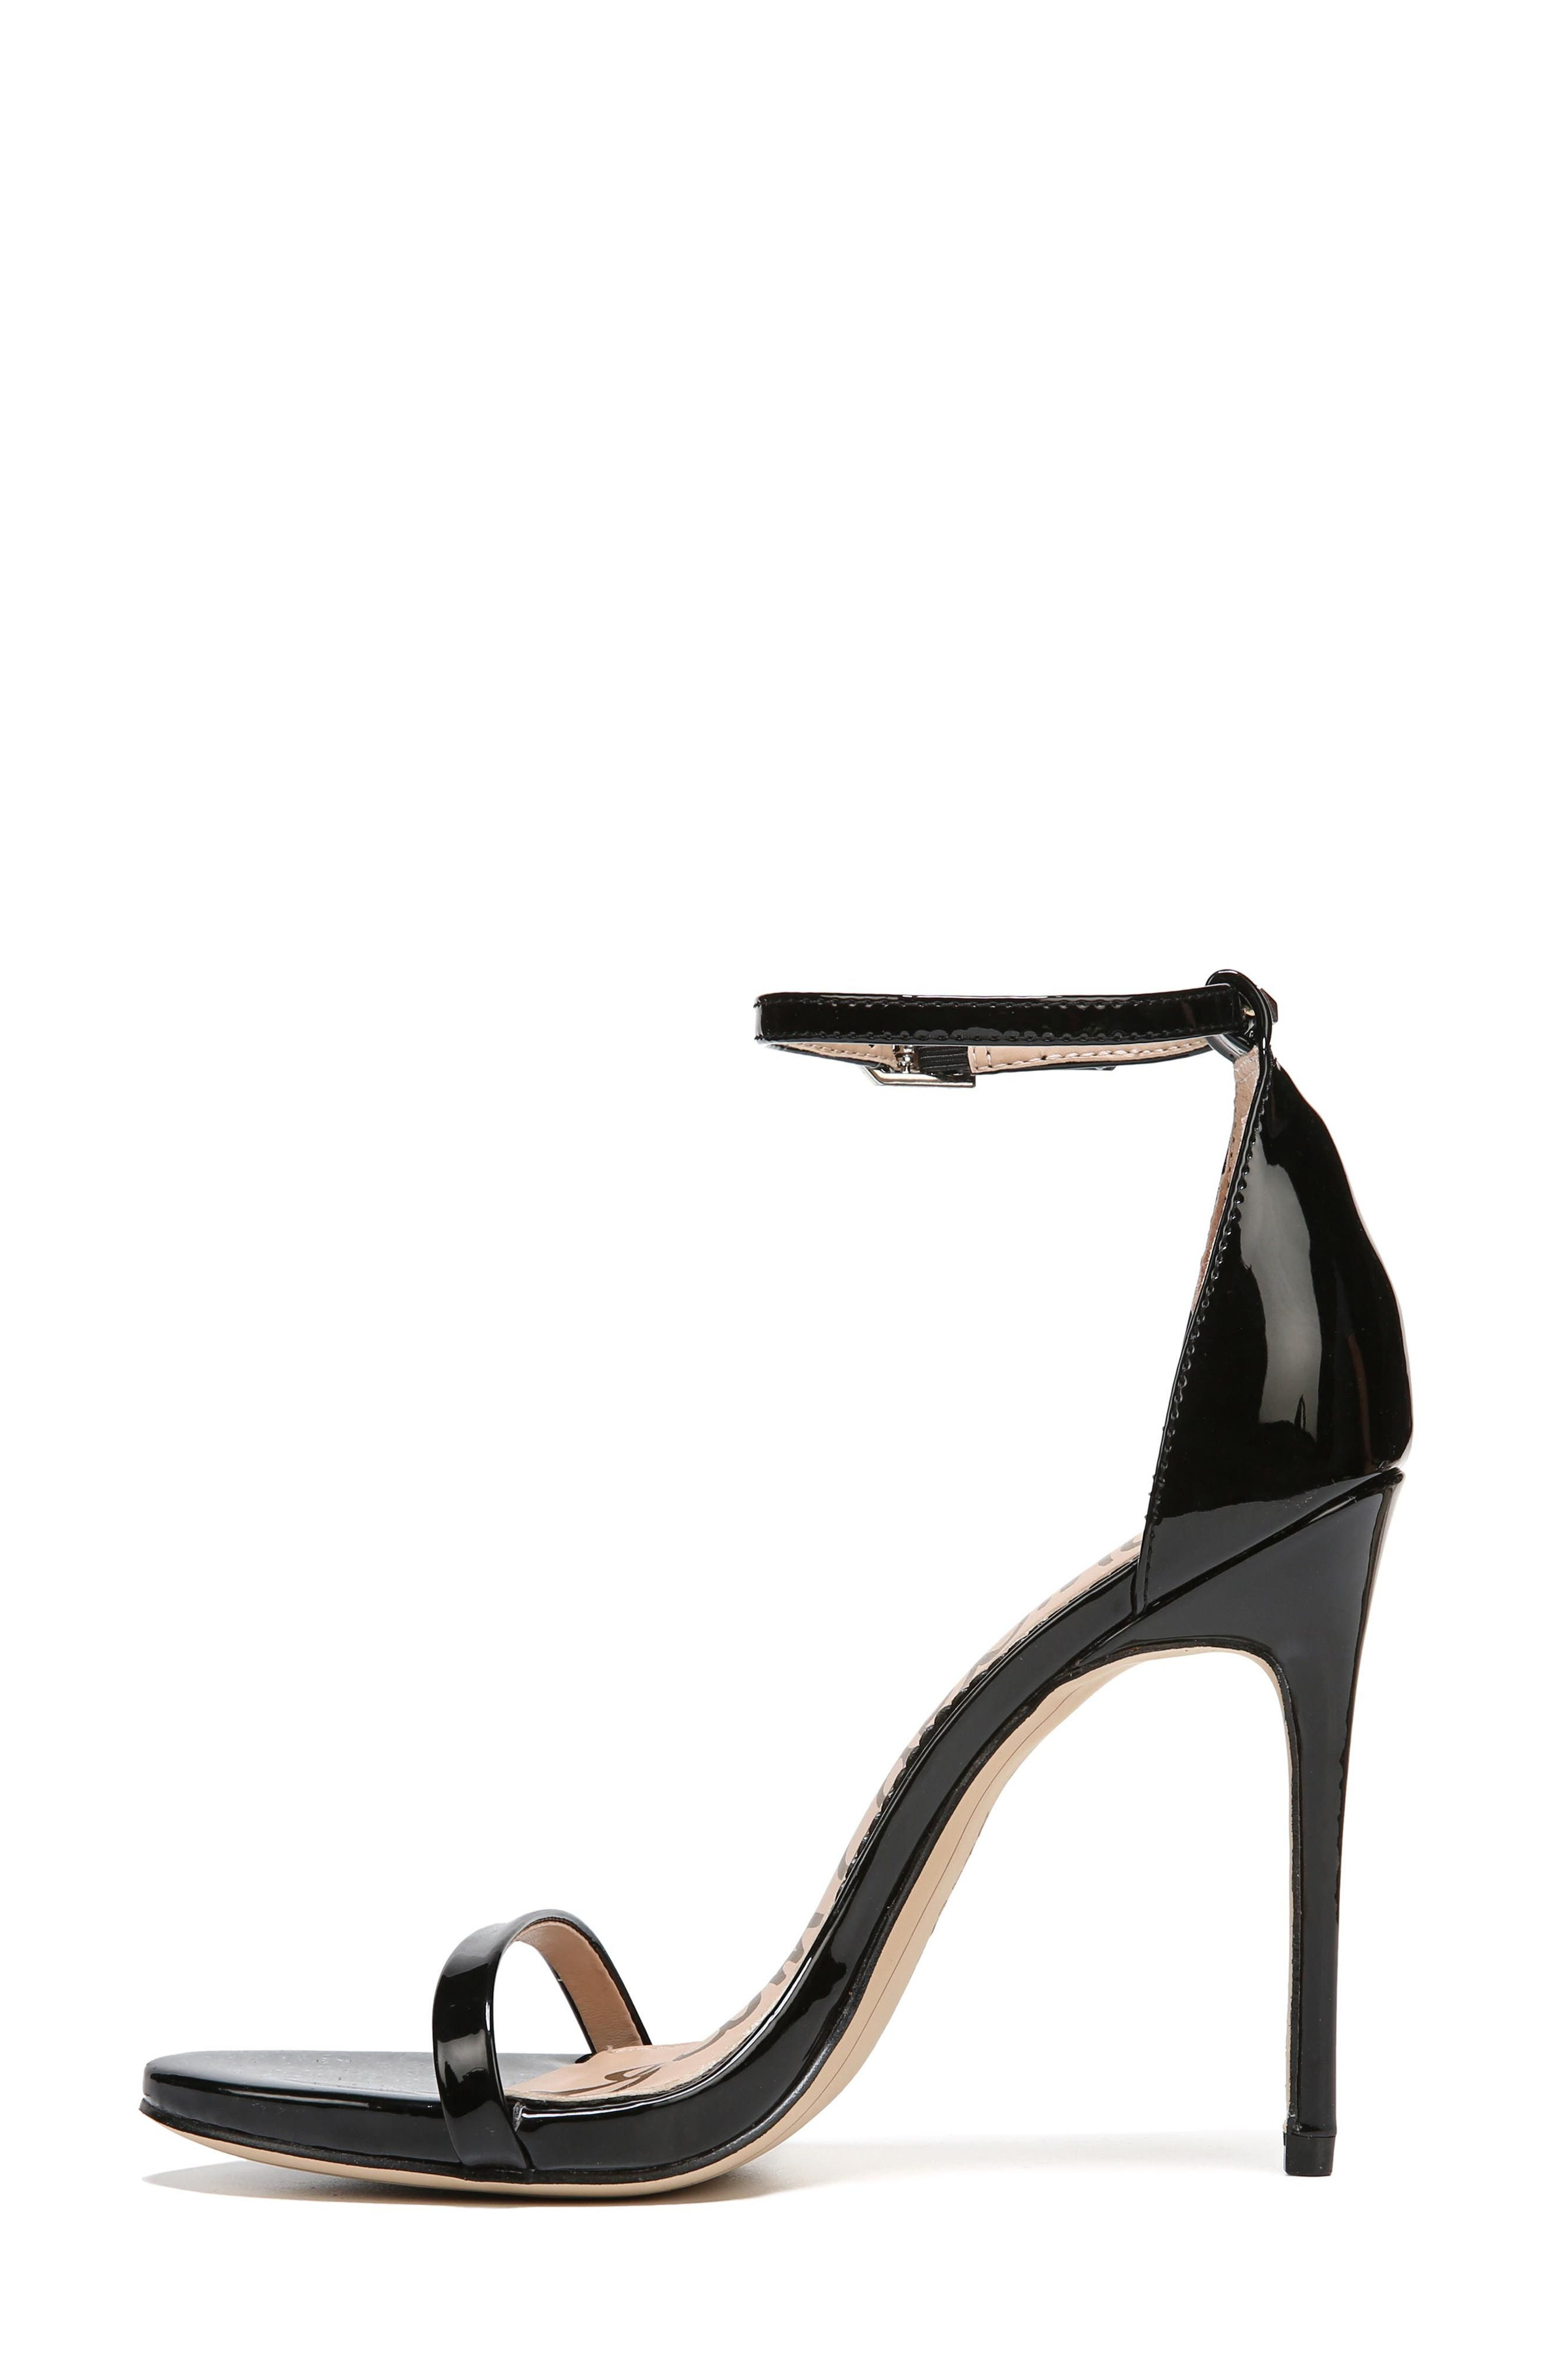 Ariella Ankle Strap Sandal,                             Alternate thumbnail 3, color,                             BLACK PATENT LEATHER